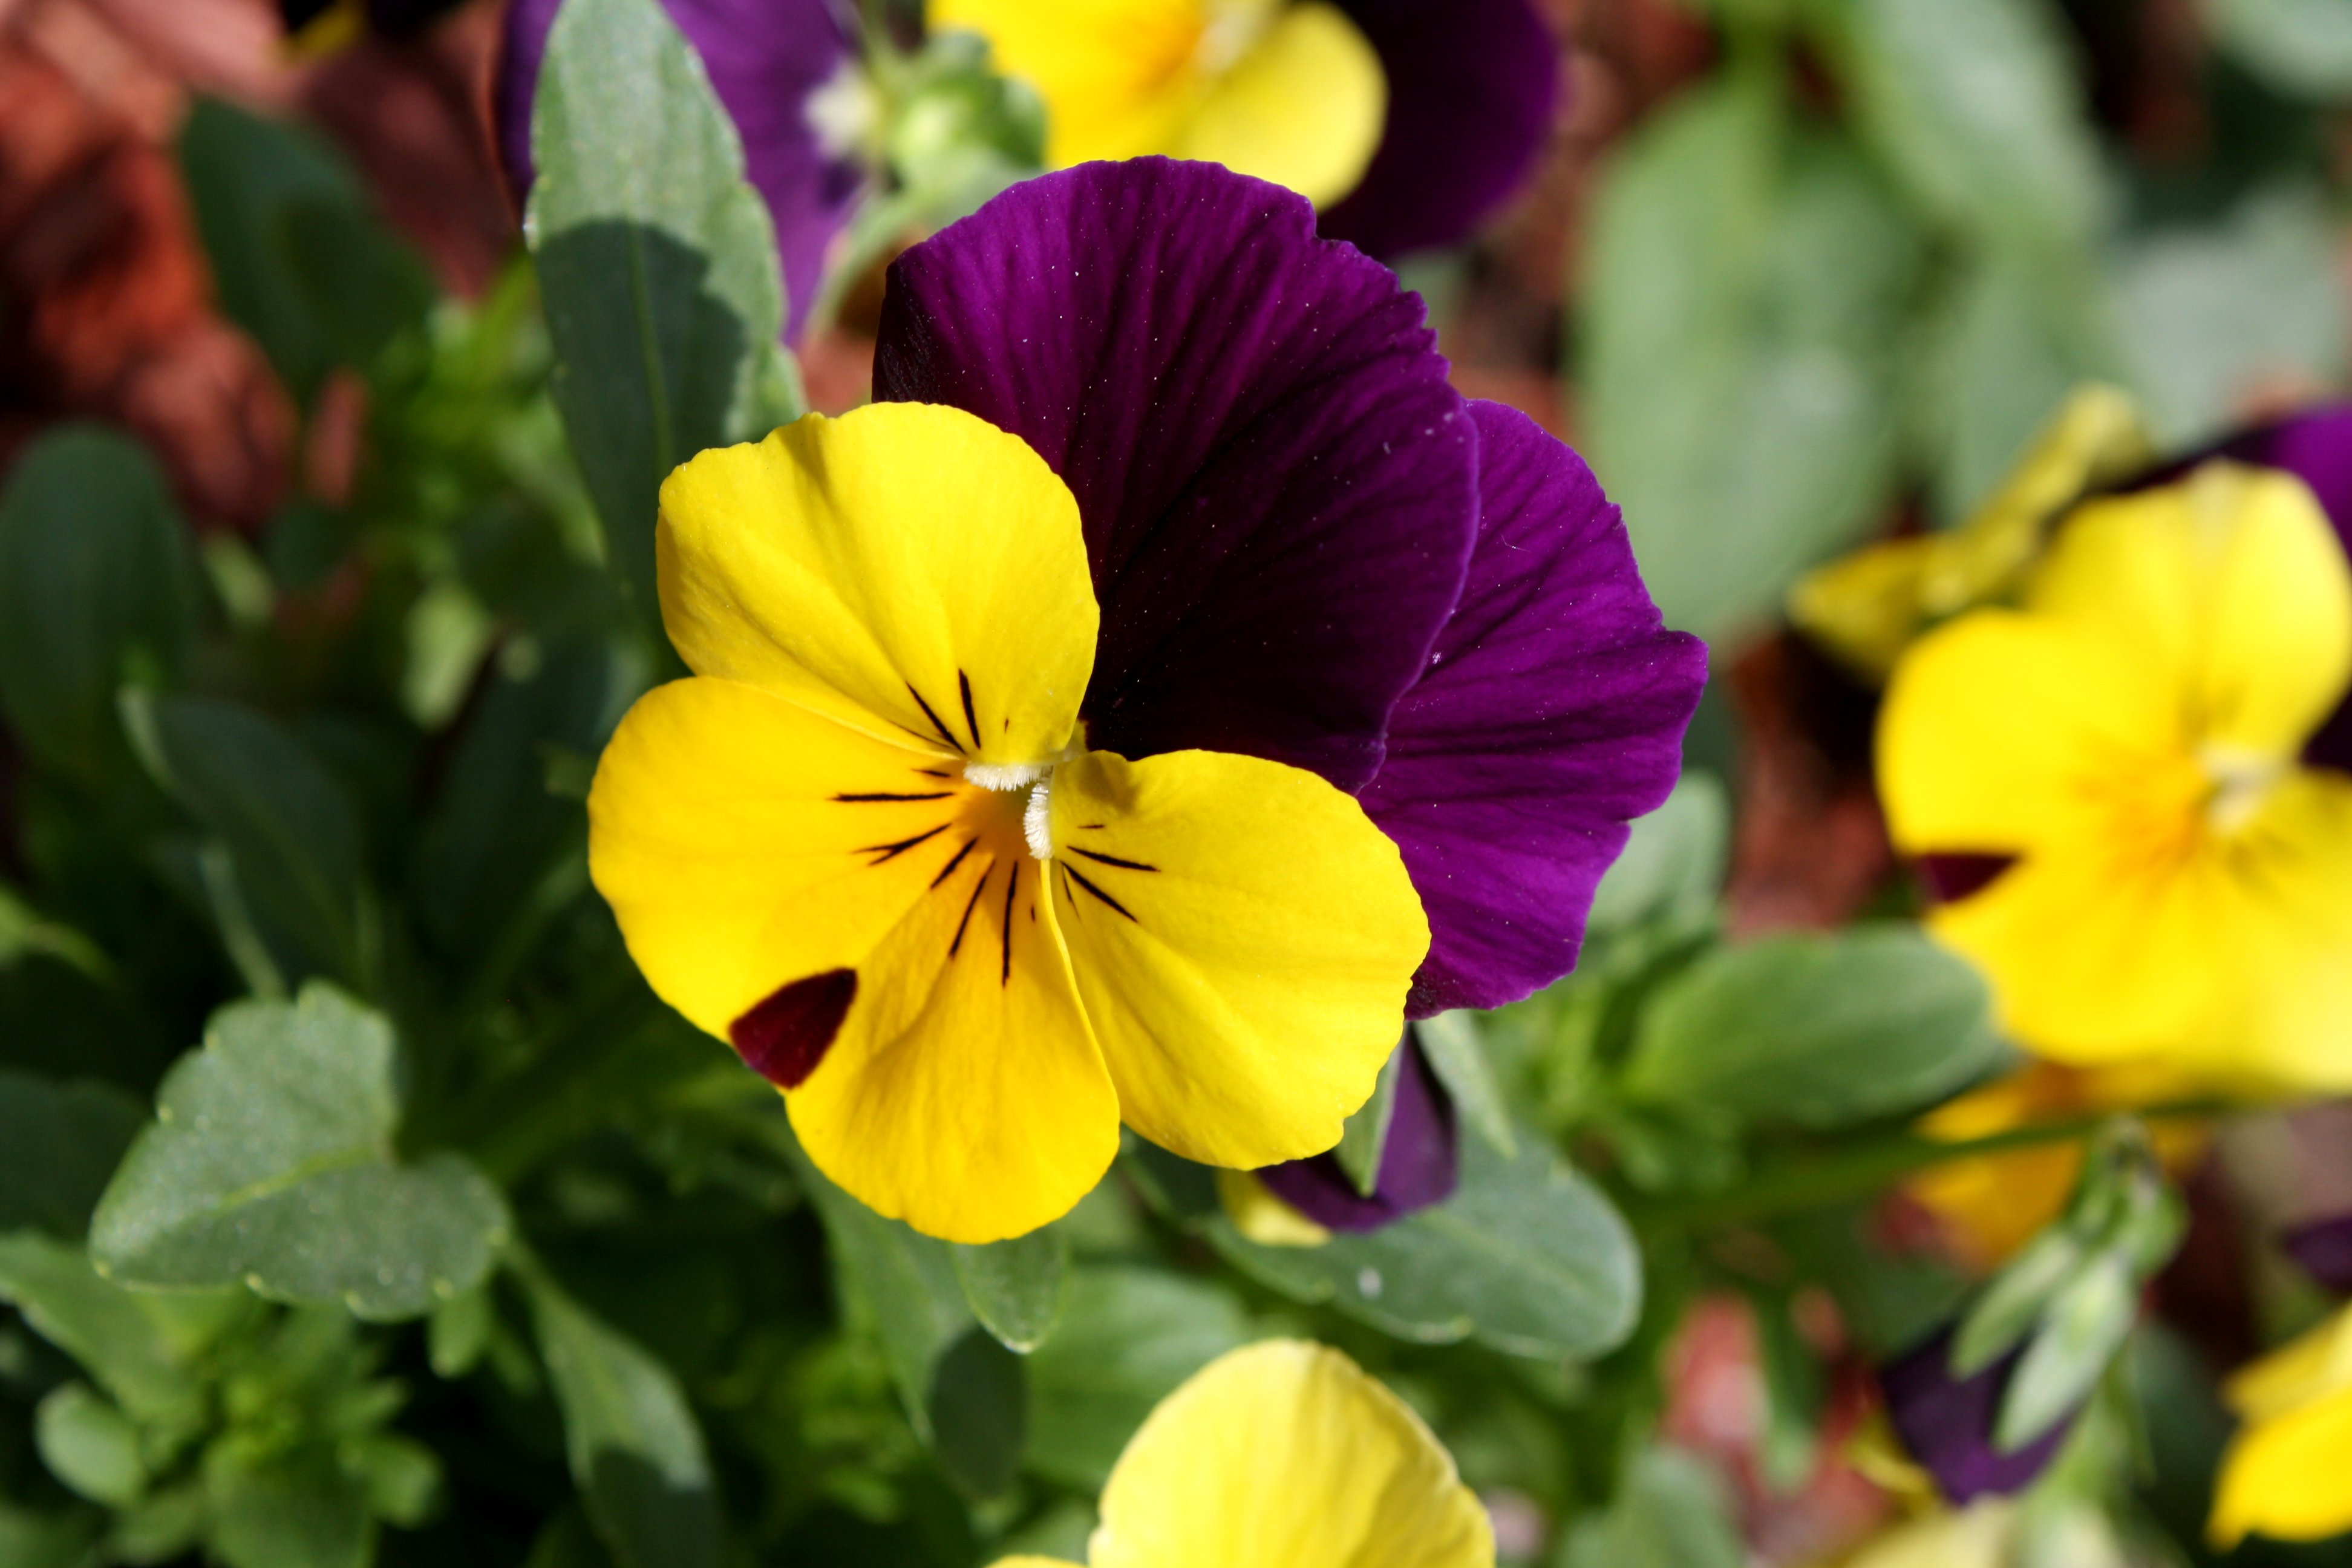 File:Viola tricolor pansy flower close up.jpg - Wikimedia Commons